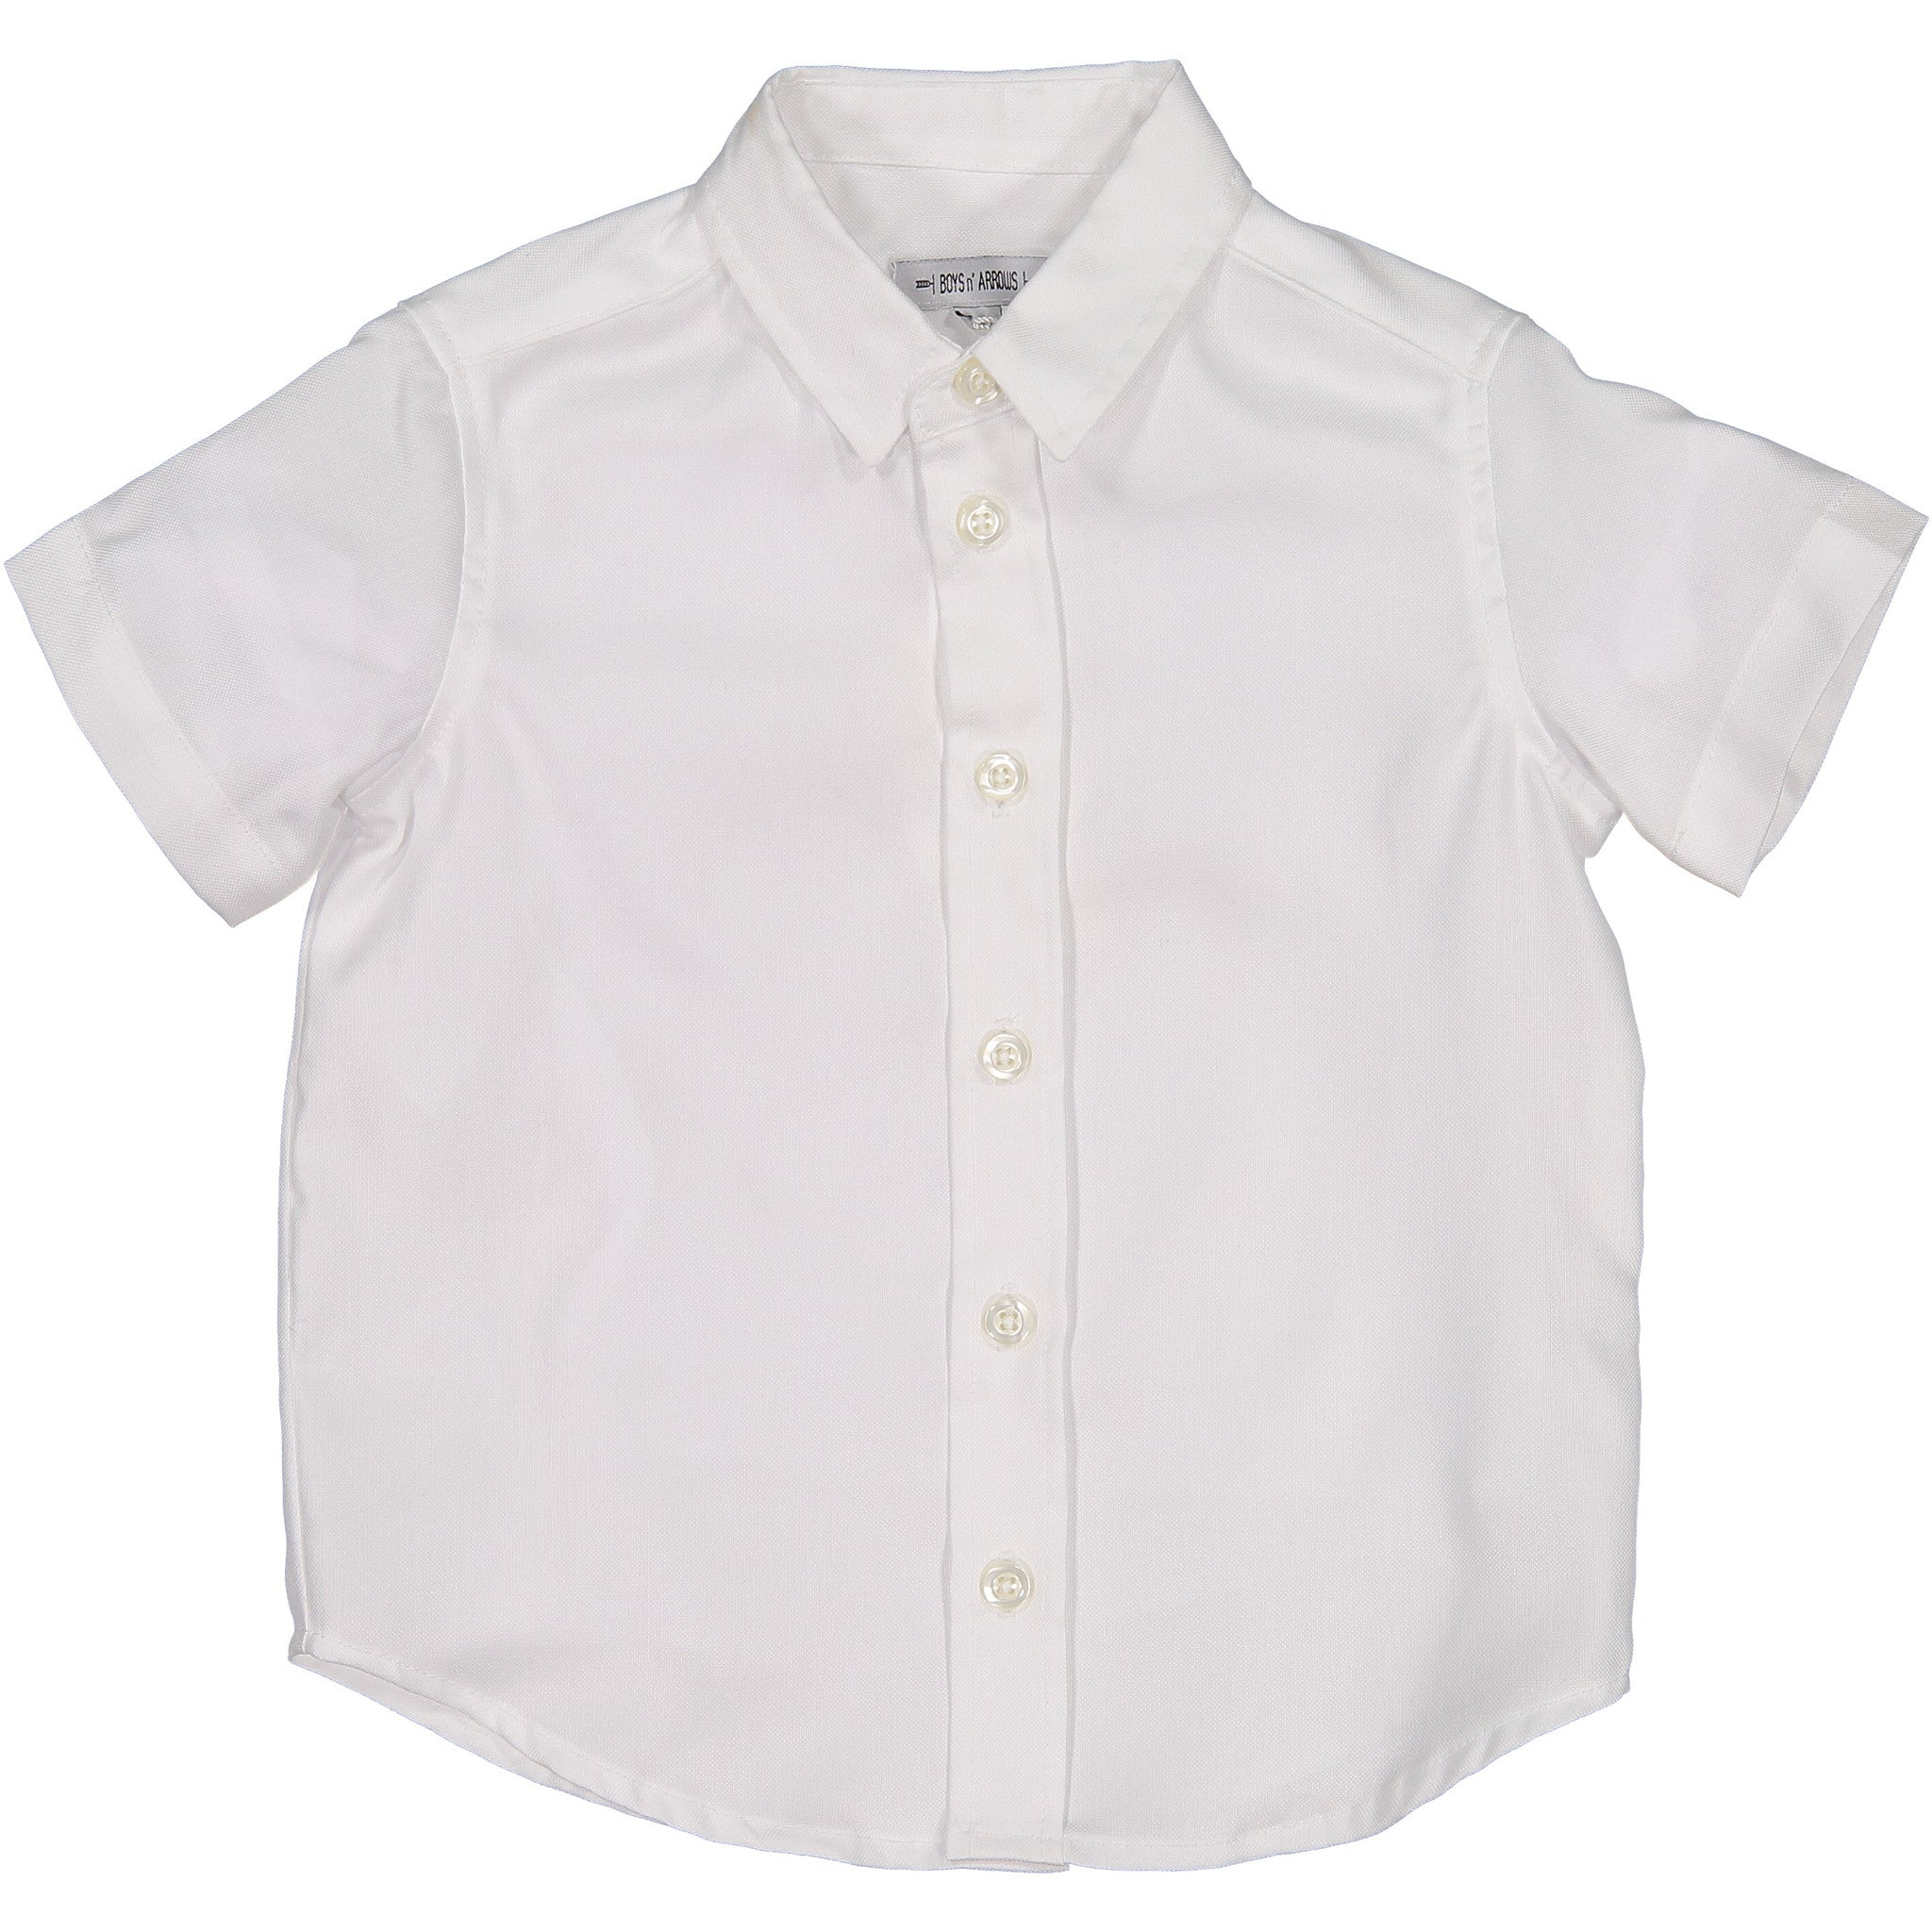 Boys & Arrows White Classic SS Shirt - Ladida